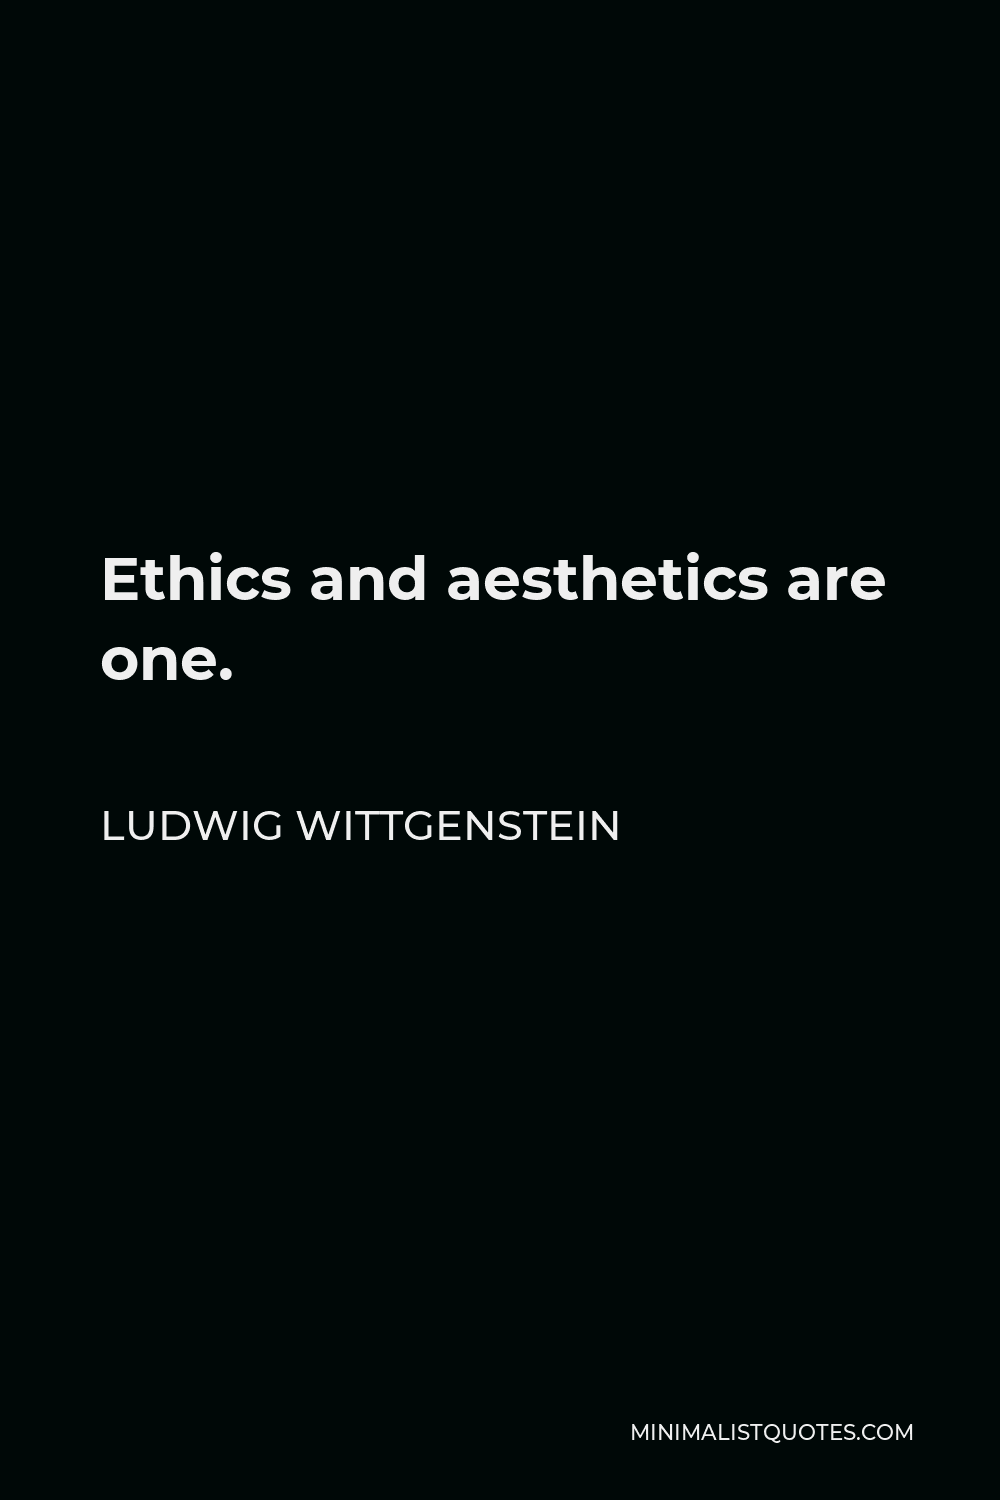 Ludwig Wittgenstein Quote - Ethics and aesthetics are one.